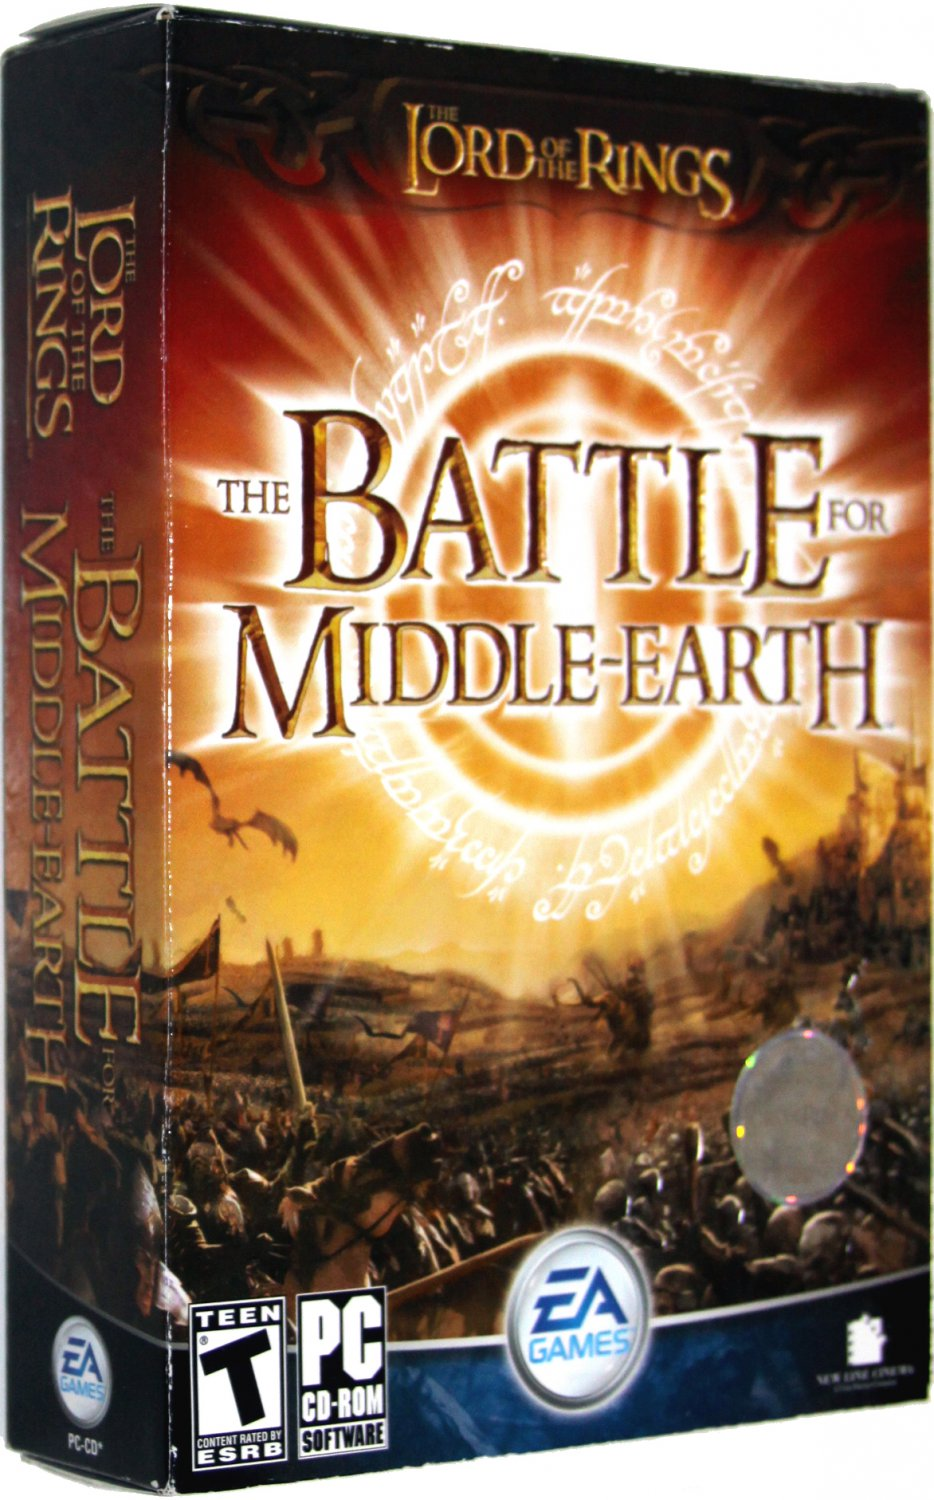 The Lord of the Rings: The Battle for Middle-earth [PC Game]